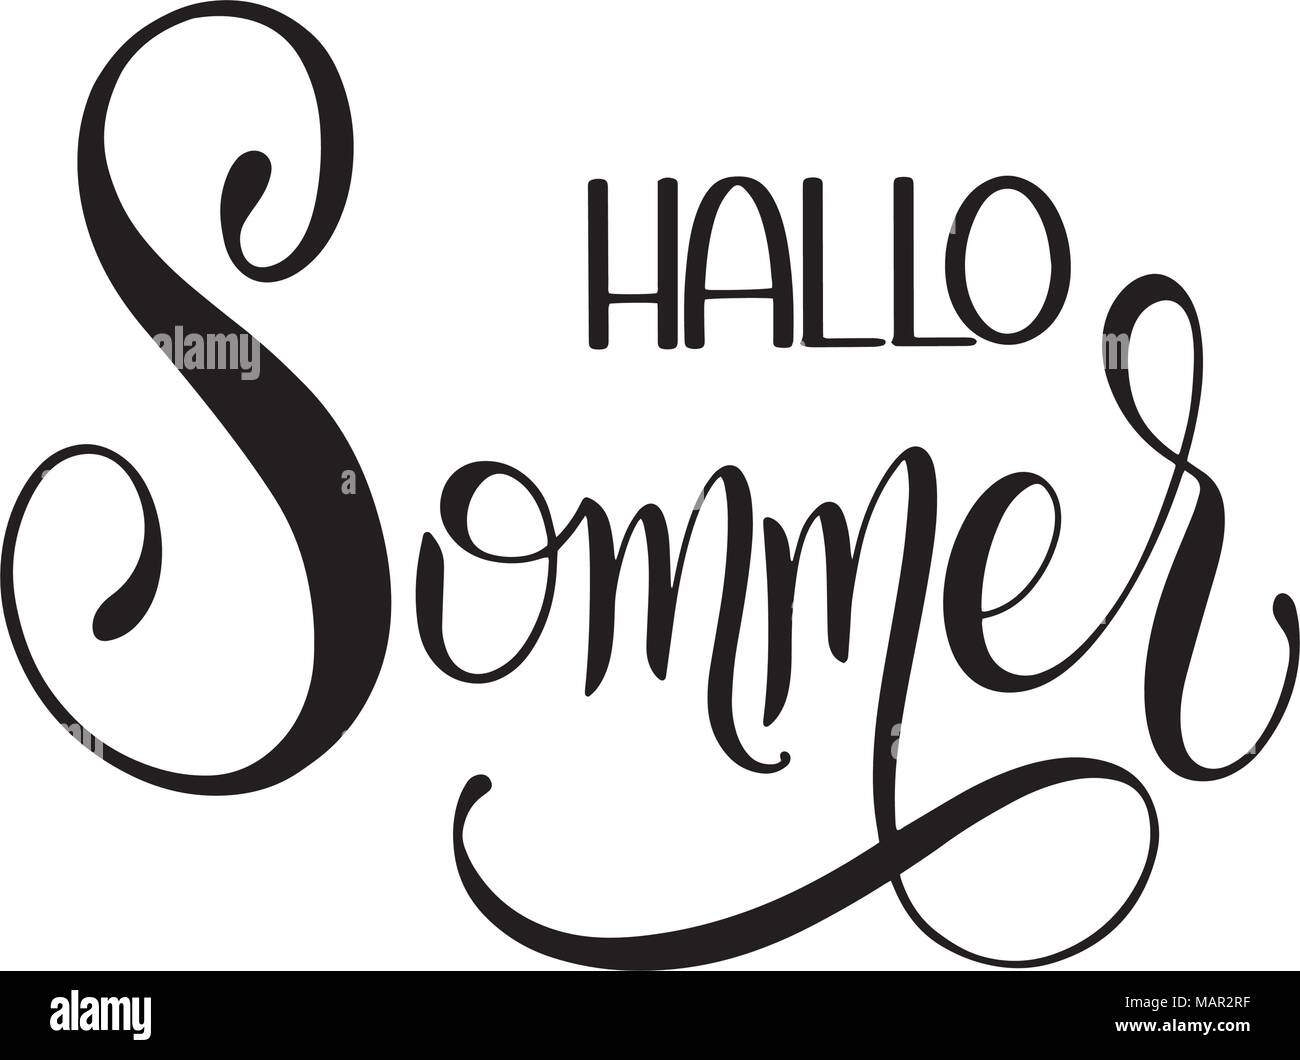 Hallo sommer hello summer lettering on german elements for hello summer lettering on german elements for invitations posters greeting cards seasons greetings m4hsunfo